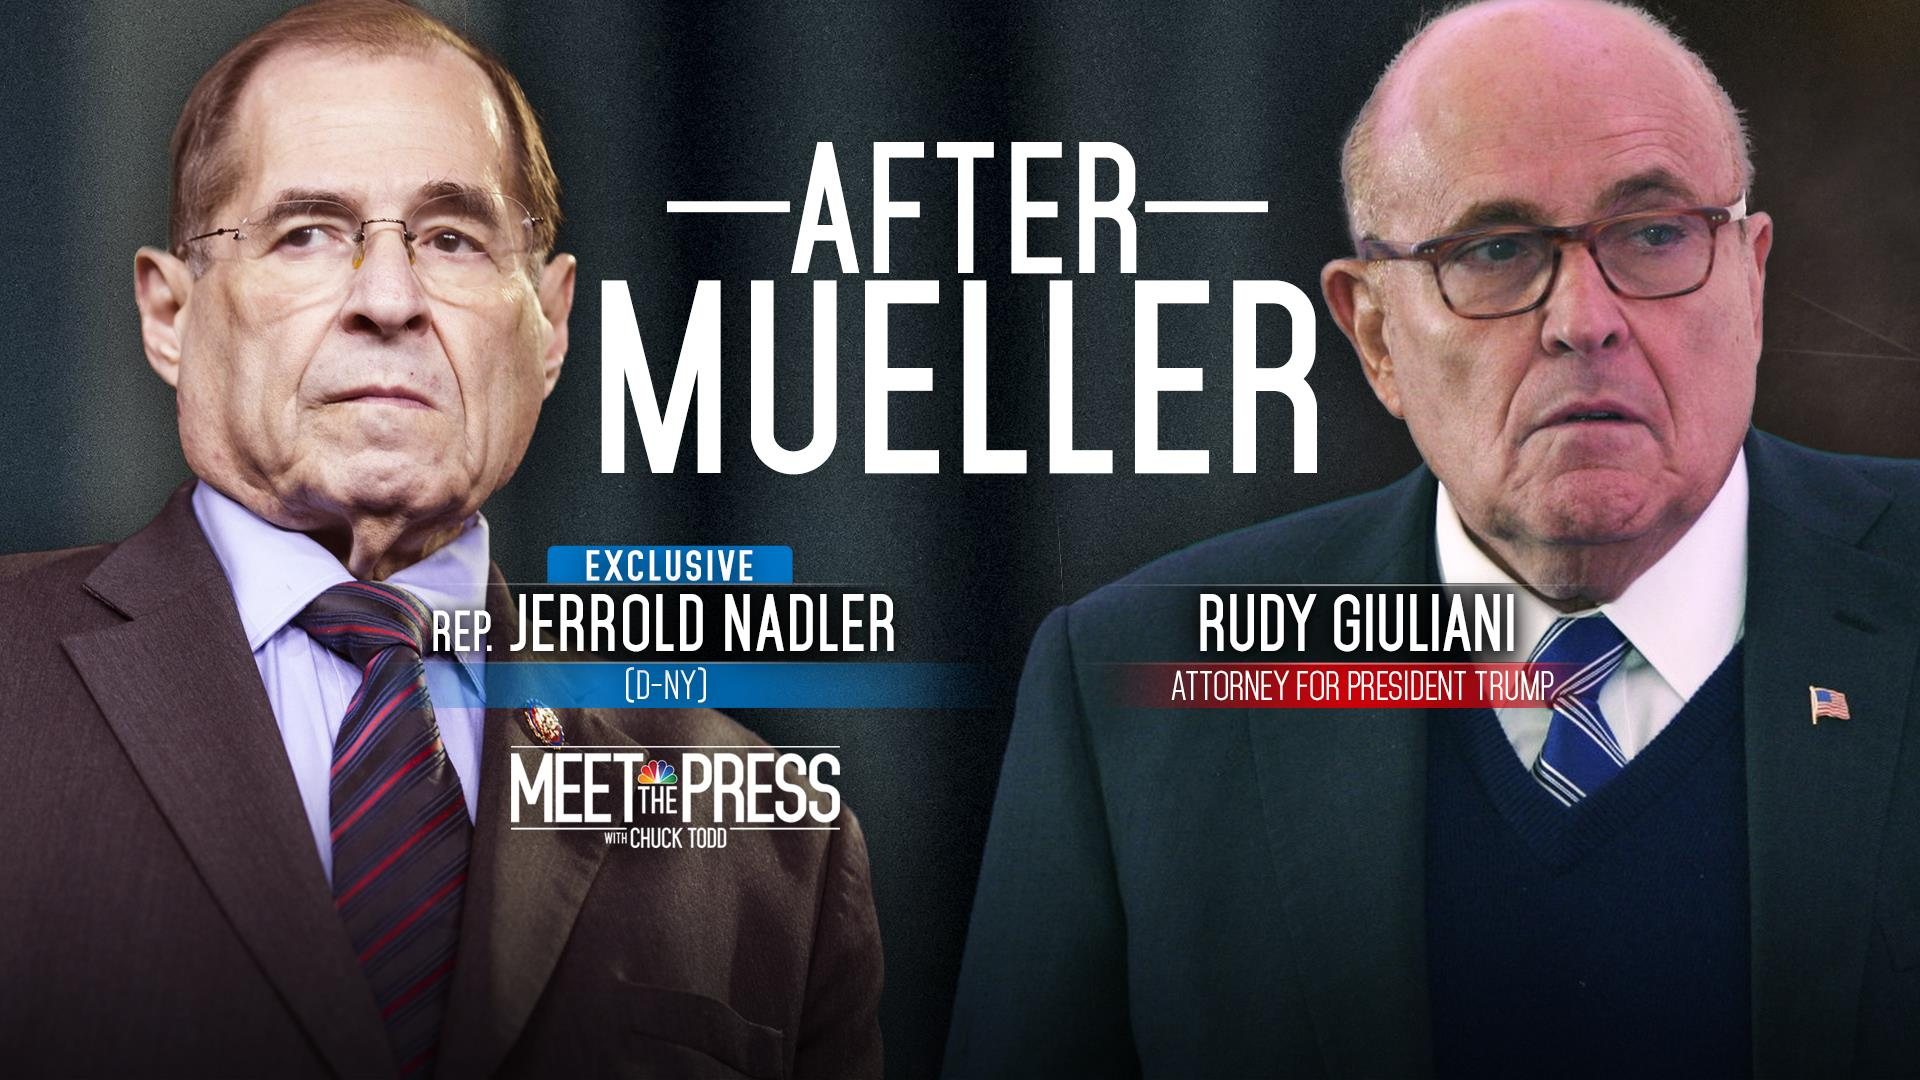 April 21 - Rudy Giuliani, Rep. Jerry Nadler